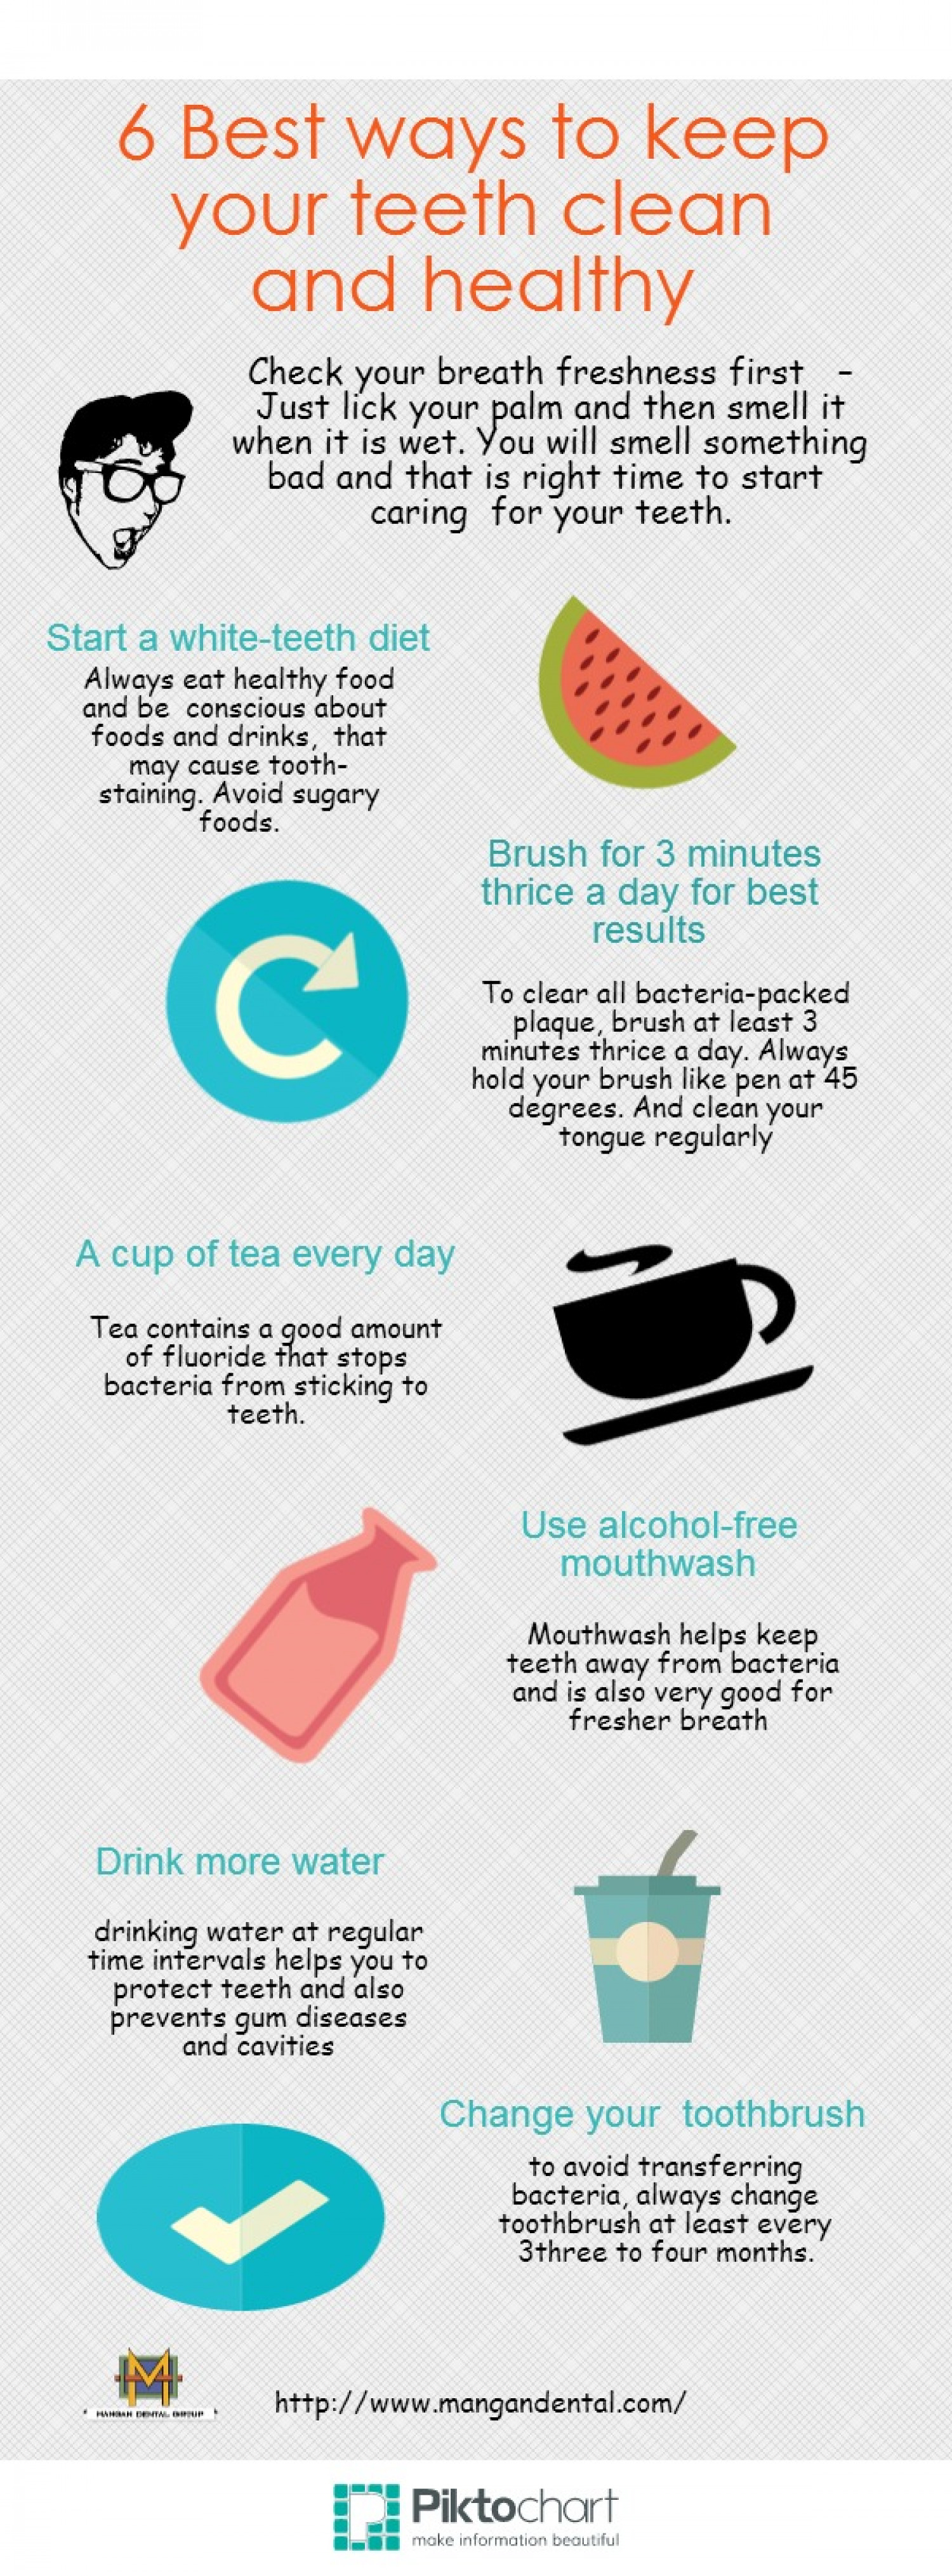 Enam Best Ways To Keep Your Teeth Clean And Healthy Infographic